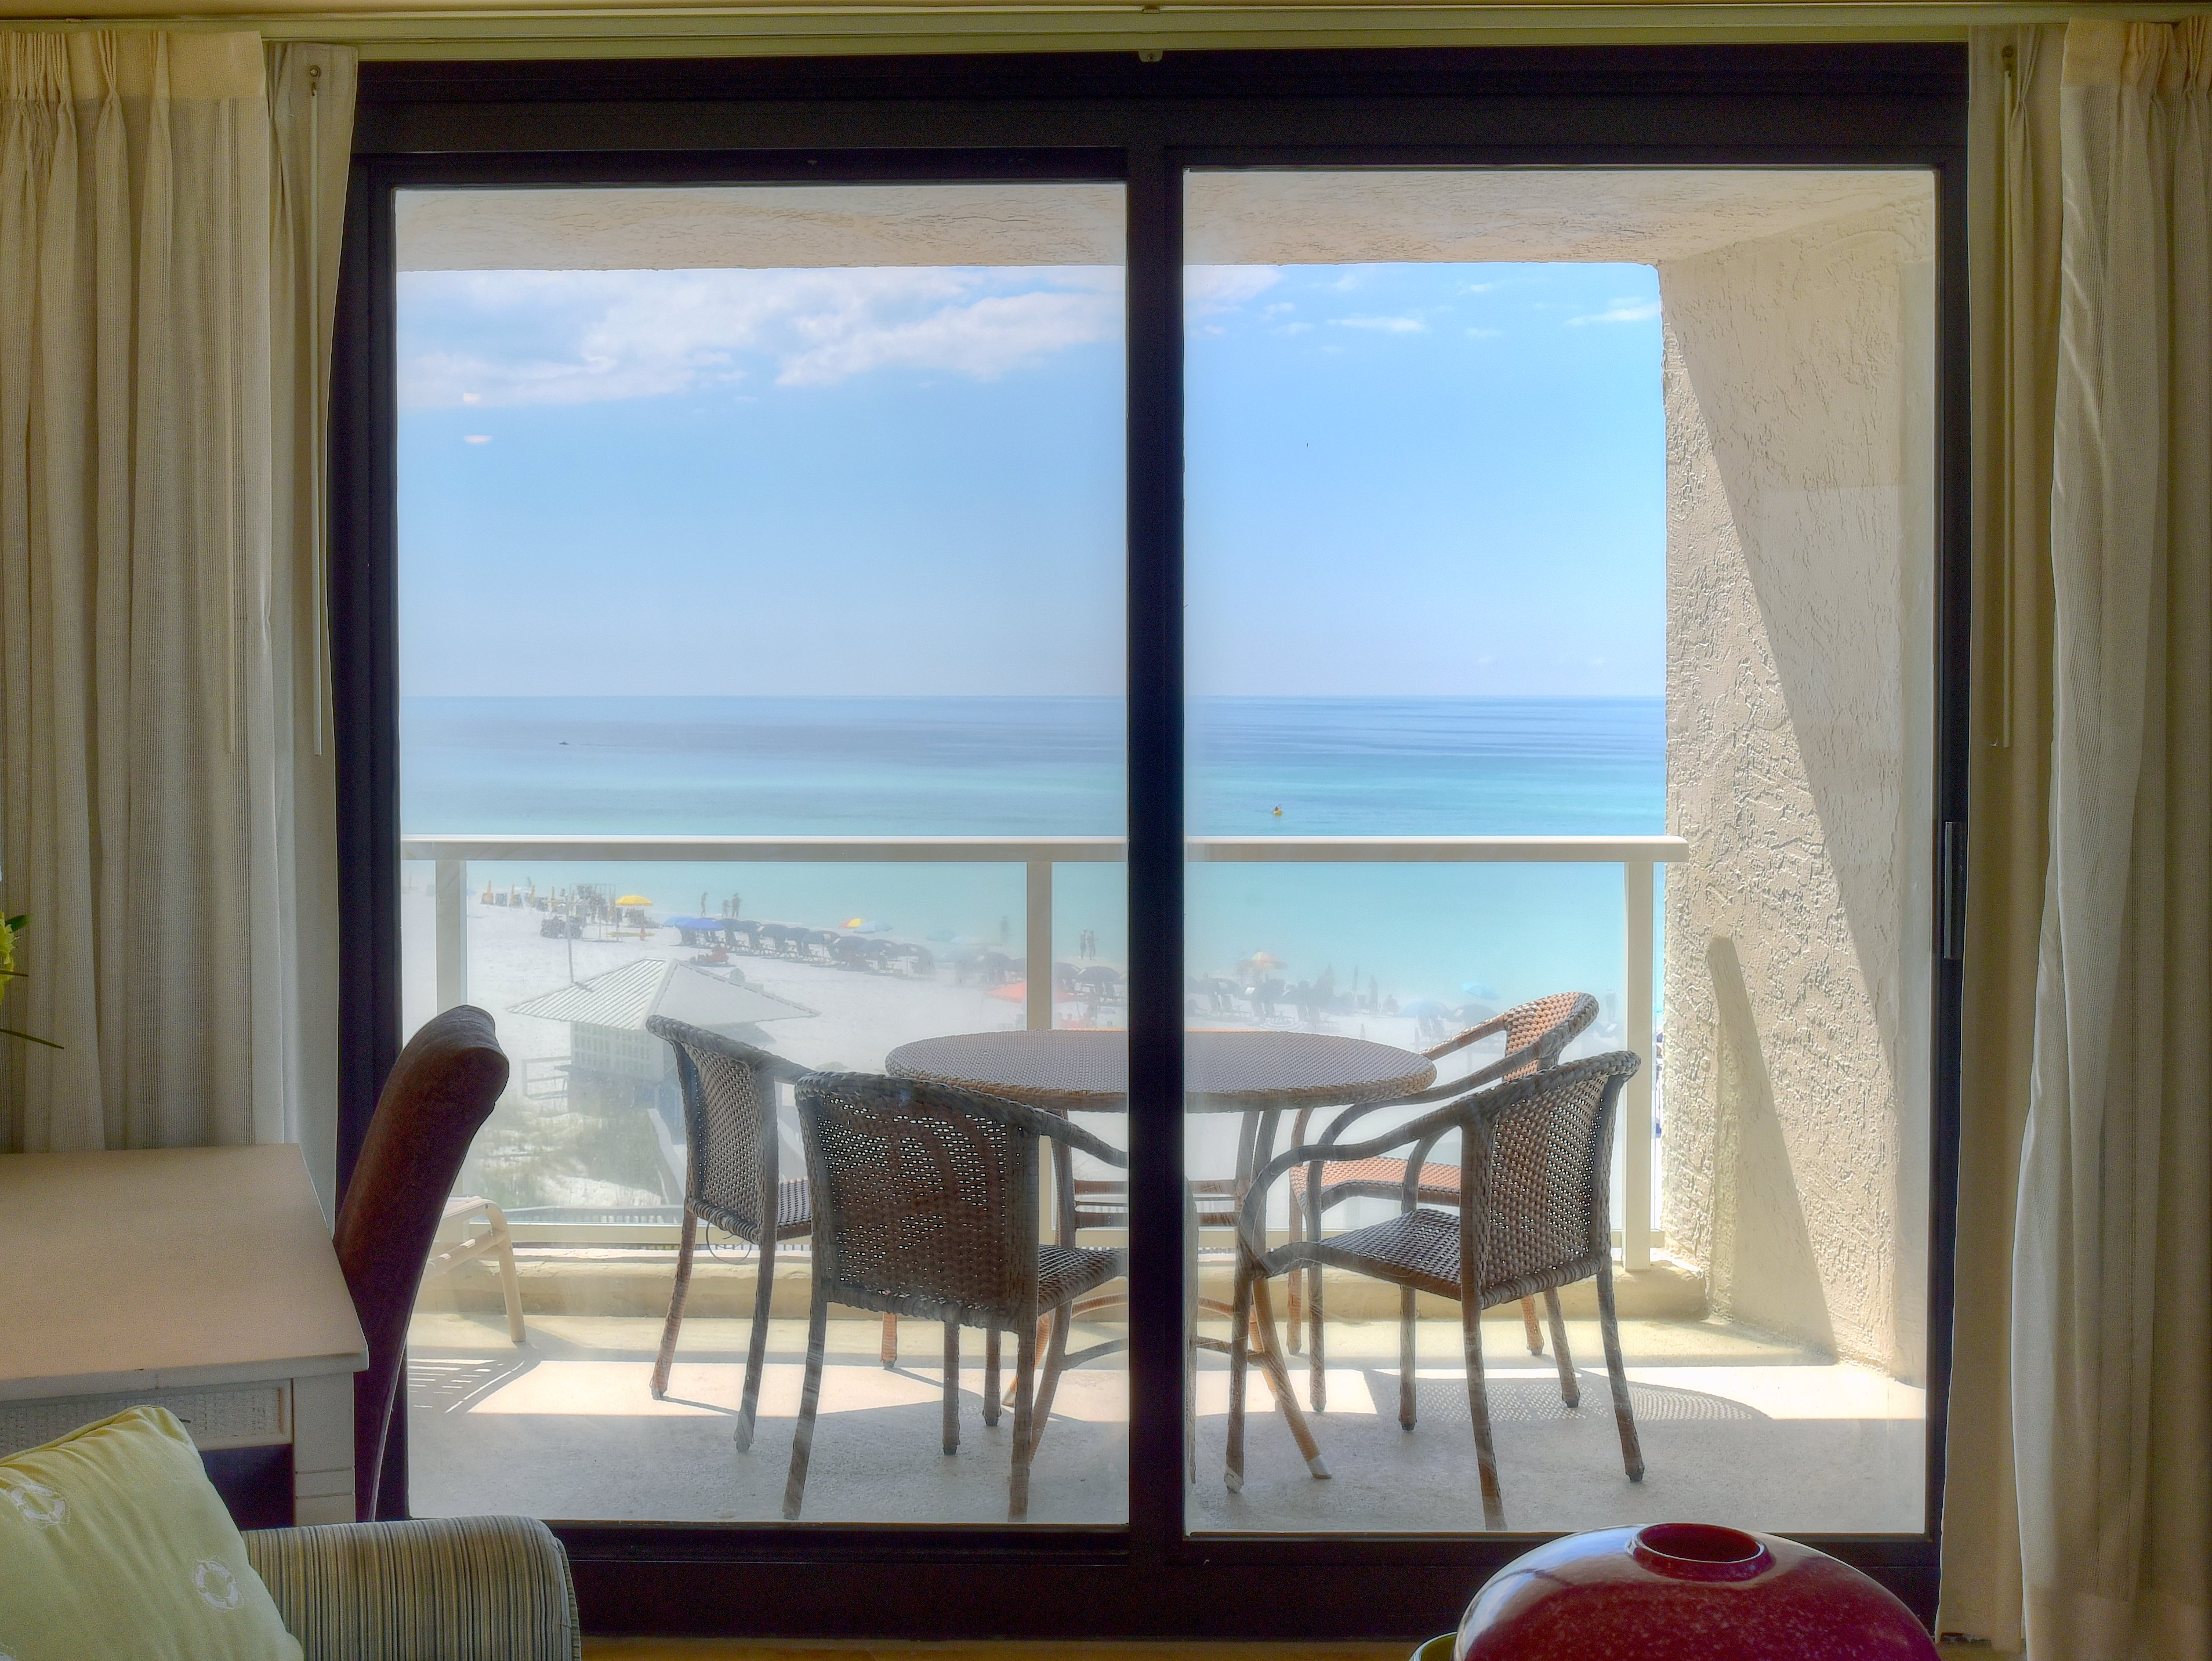 4243 Beachside Two Condo rental in Beachside Towers at Sandestin in Destin Florida - #7